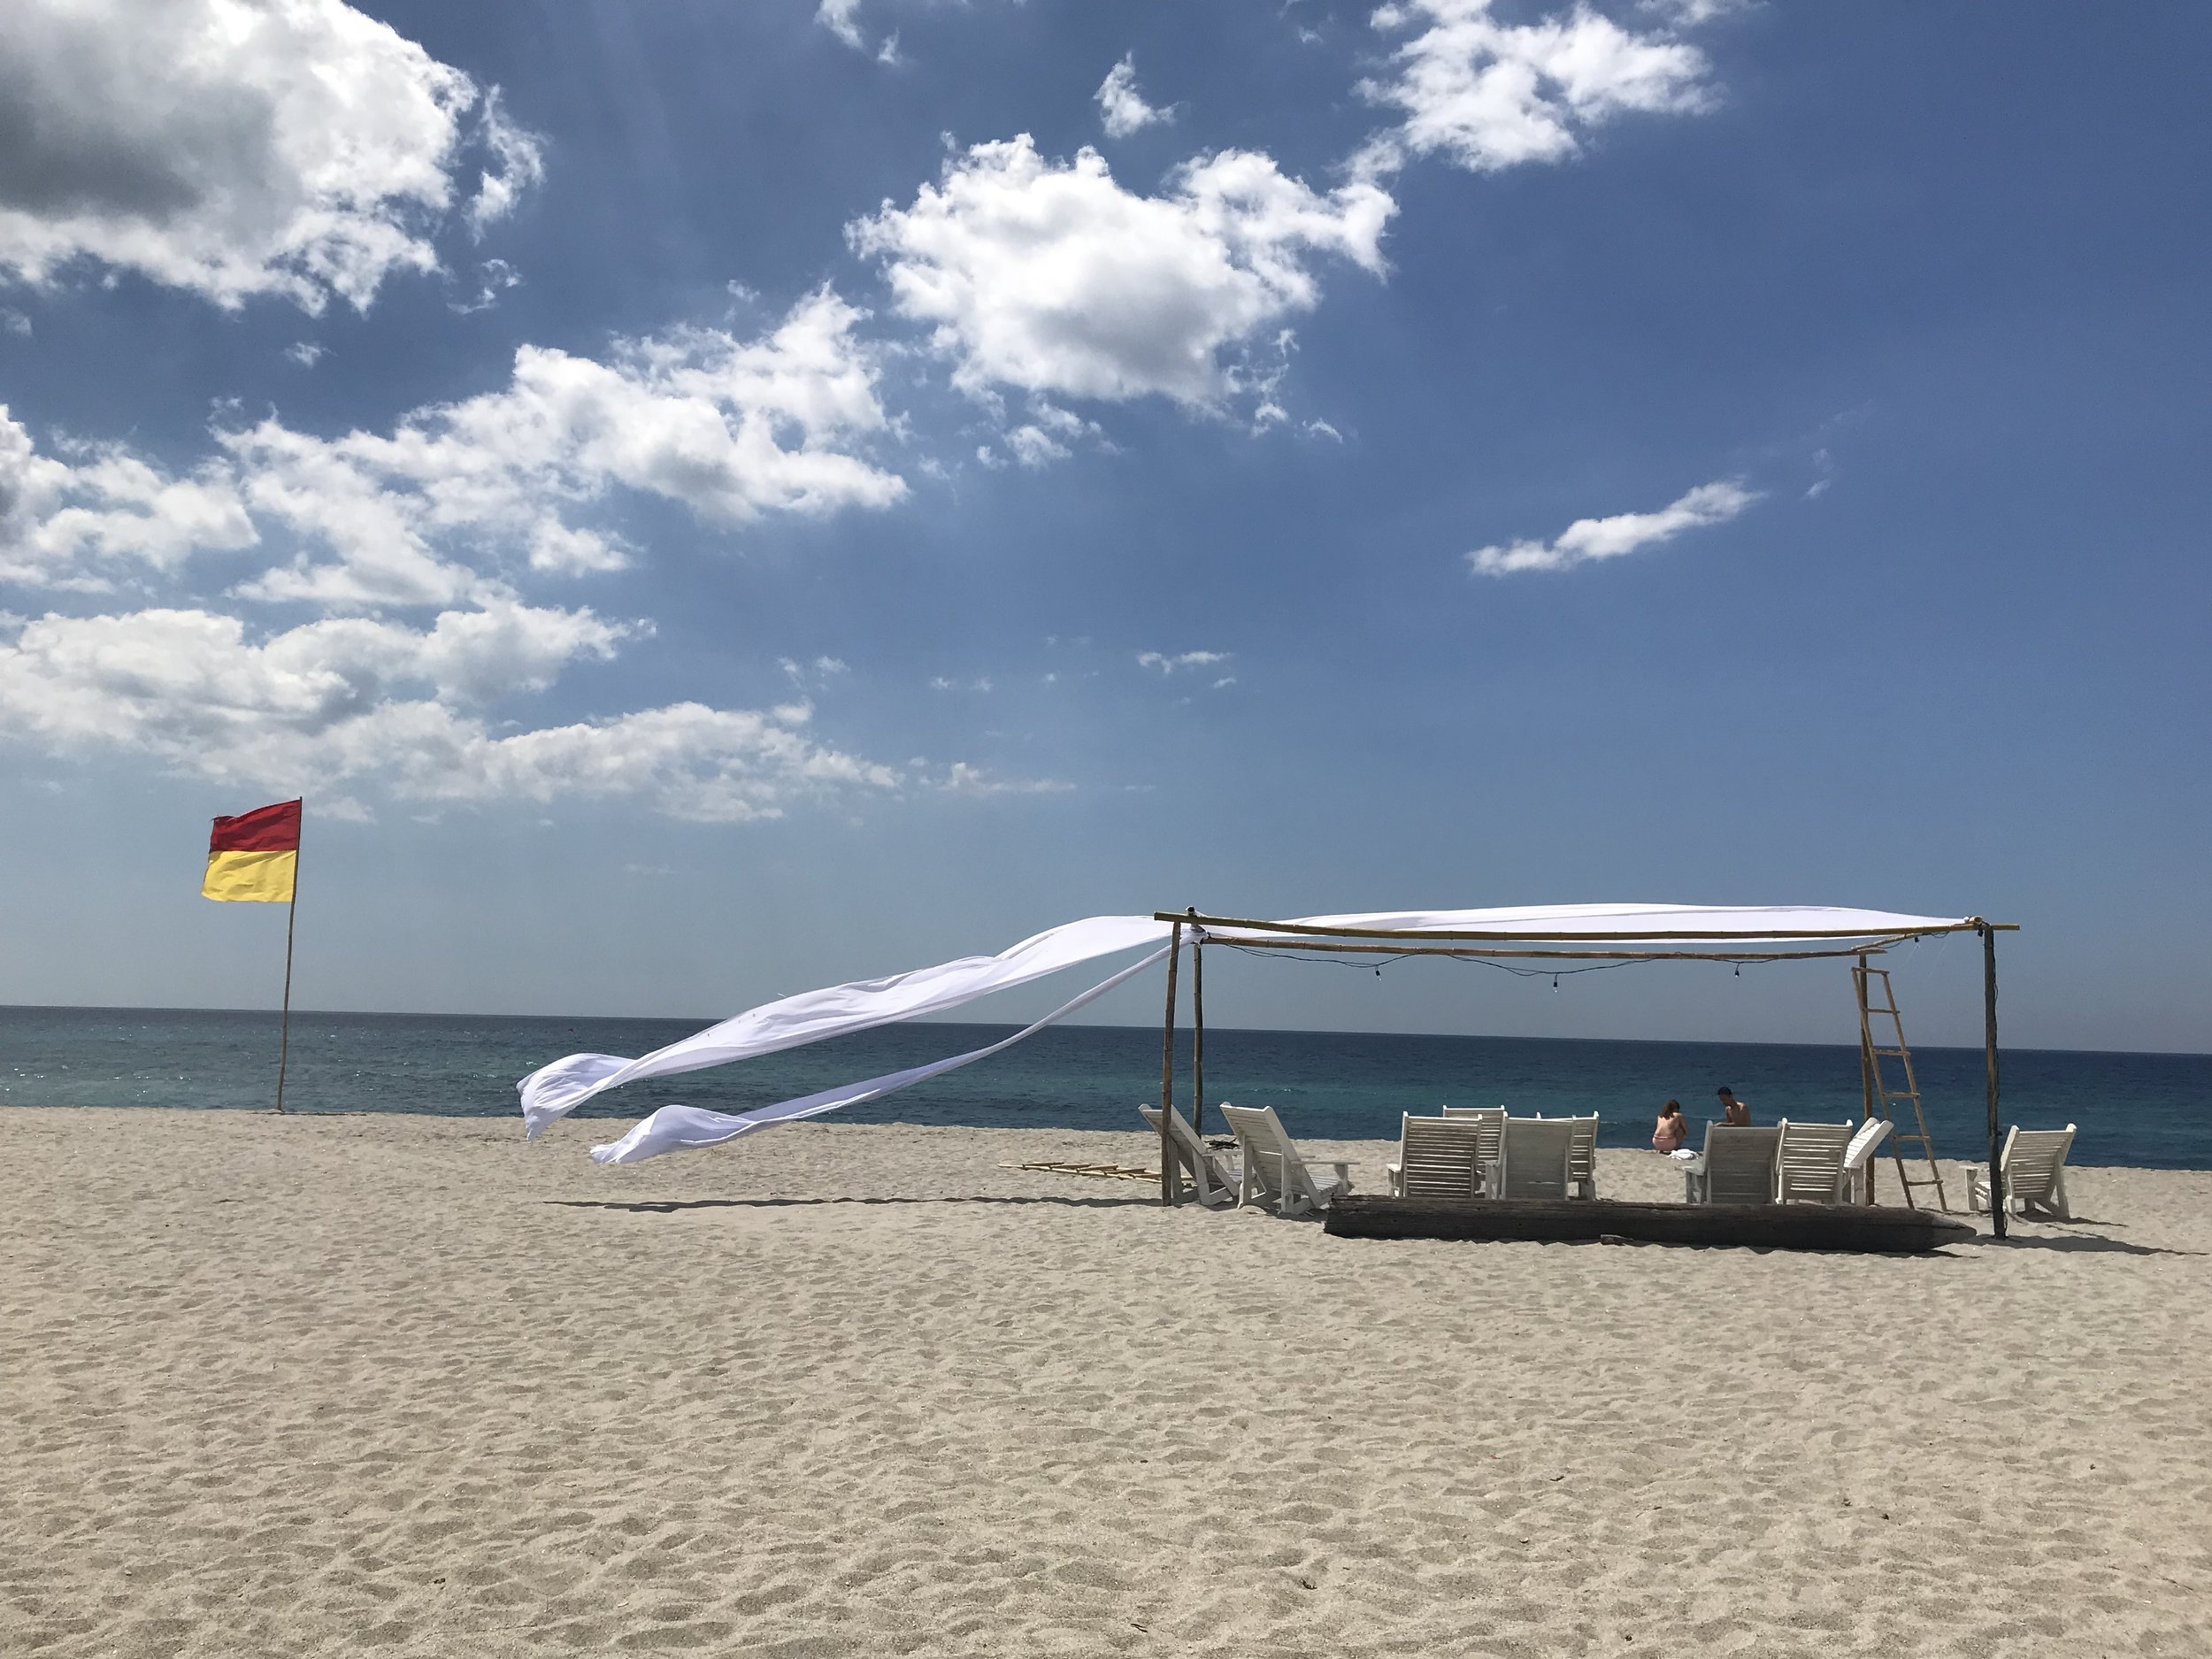 This is a perfect escape from the busy city life. You can get an intimate set up like this at Crystal Beach.